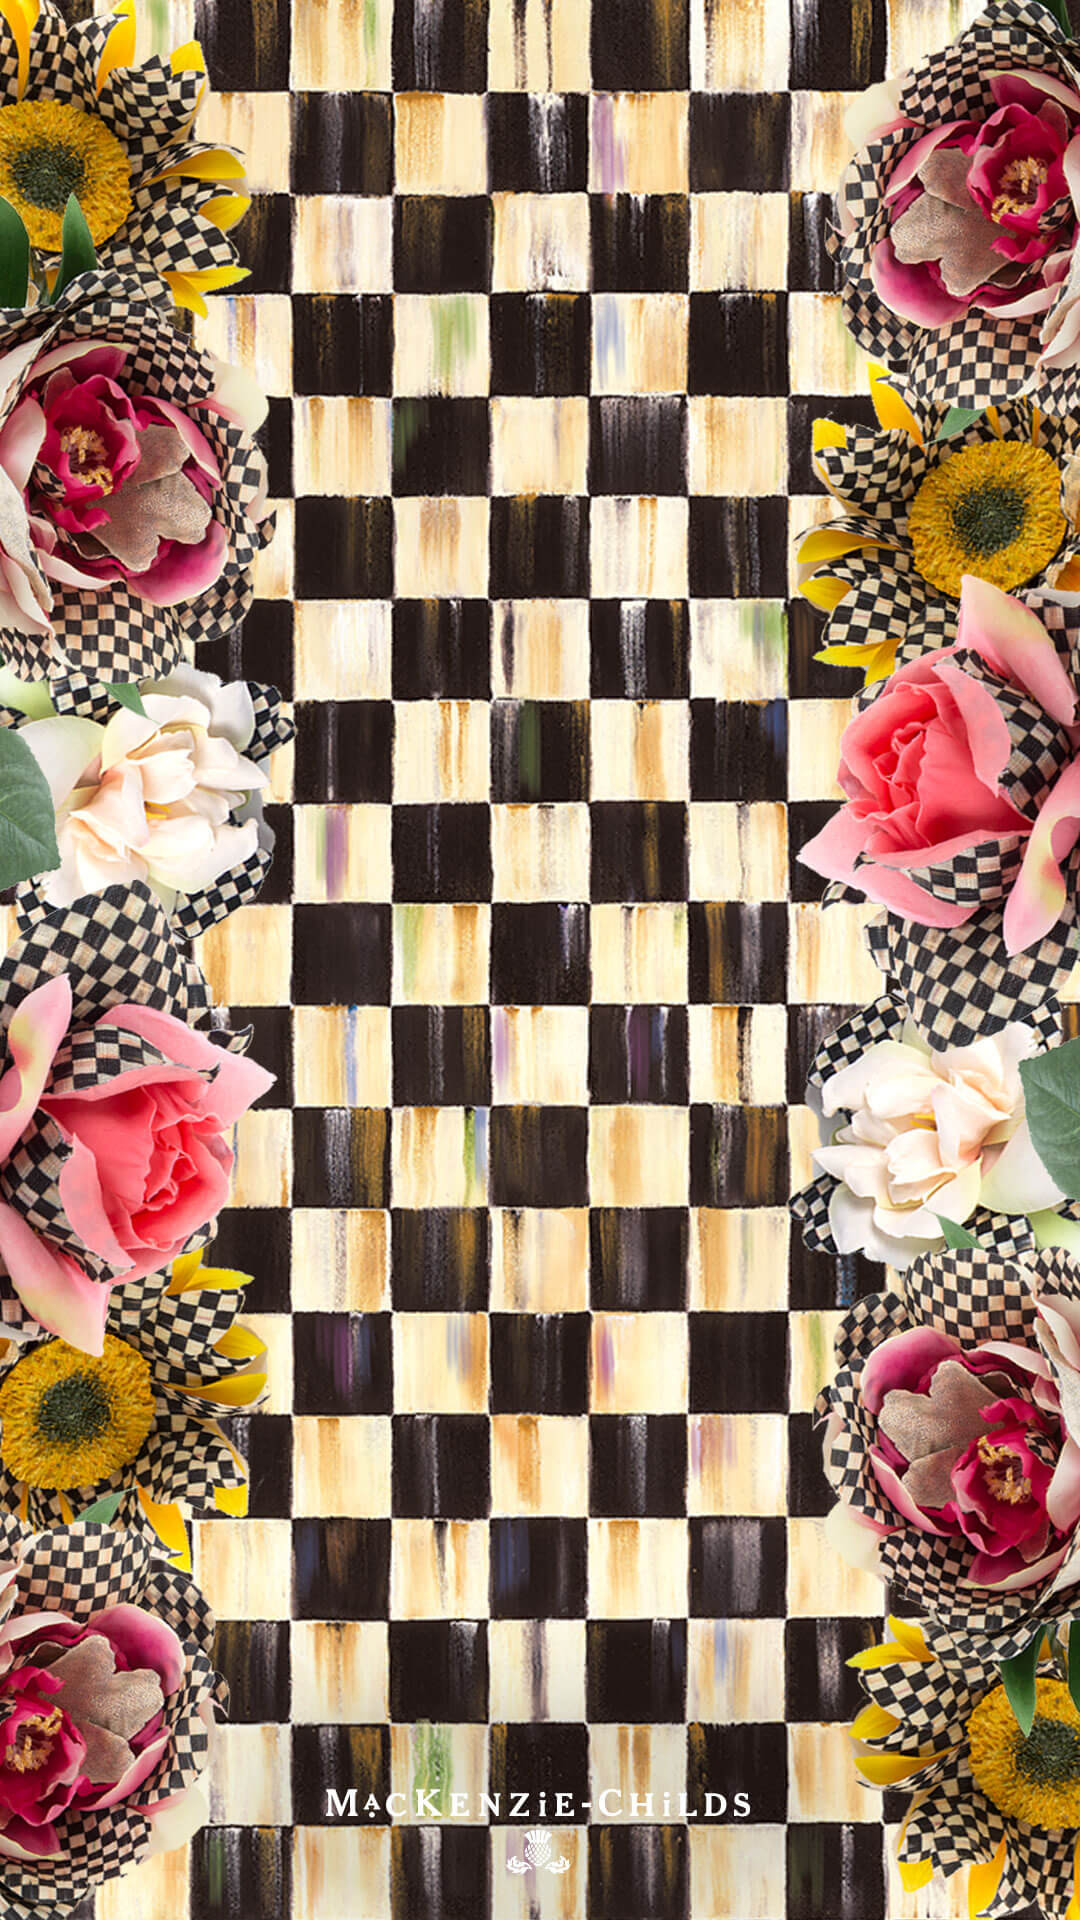 mackenzie childs great vase of mackenzie childs mobile wallpapers for courtly check day regarding choose your favorite wallpaper download it right here and set it as the background on your phone then take courtly check wherever you go